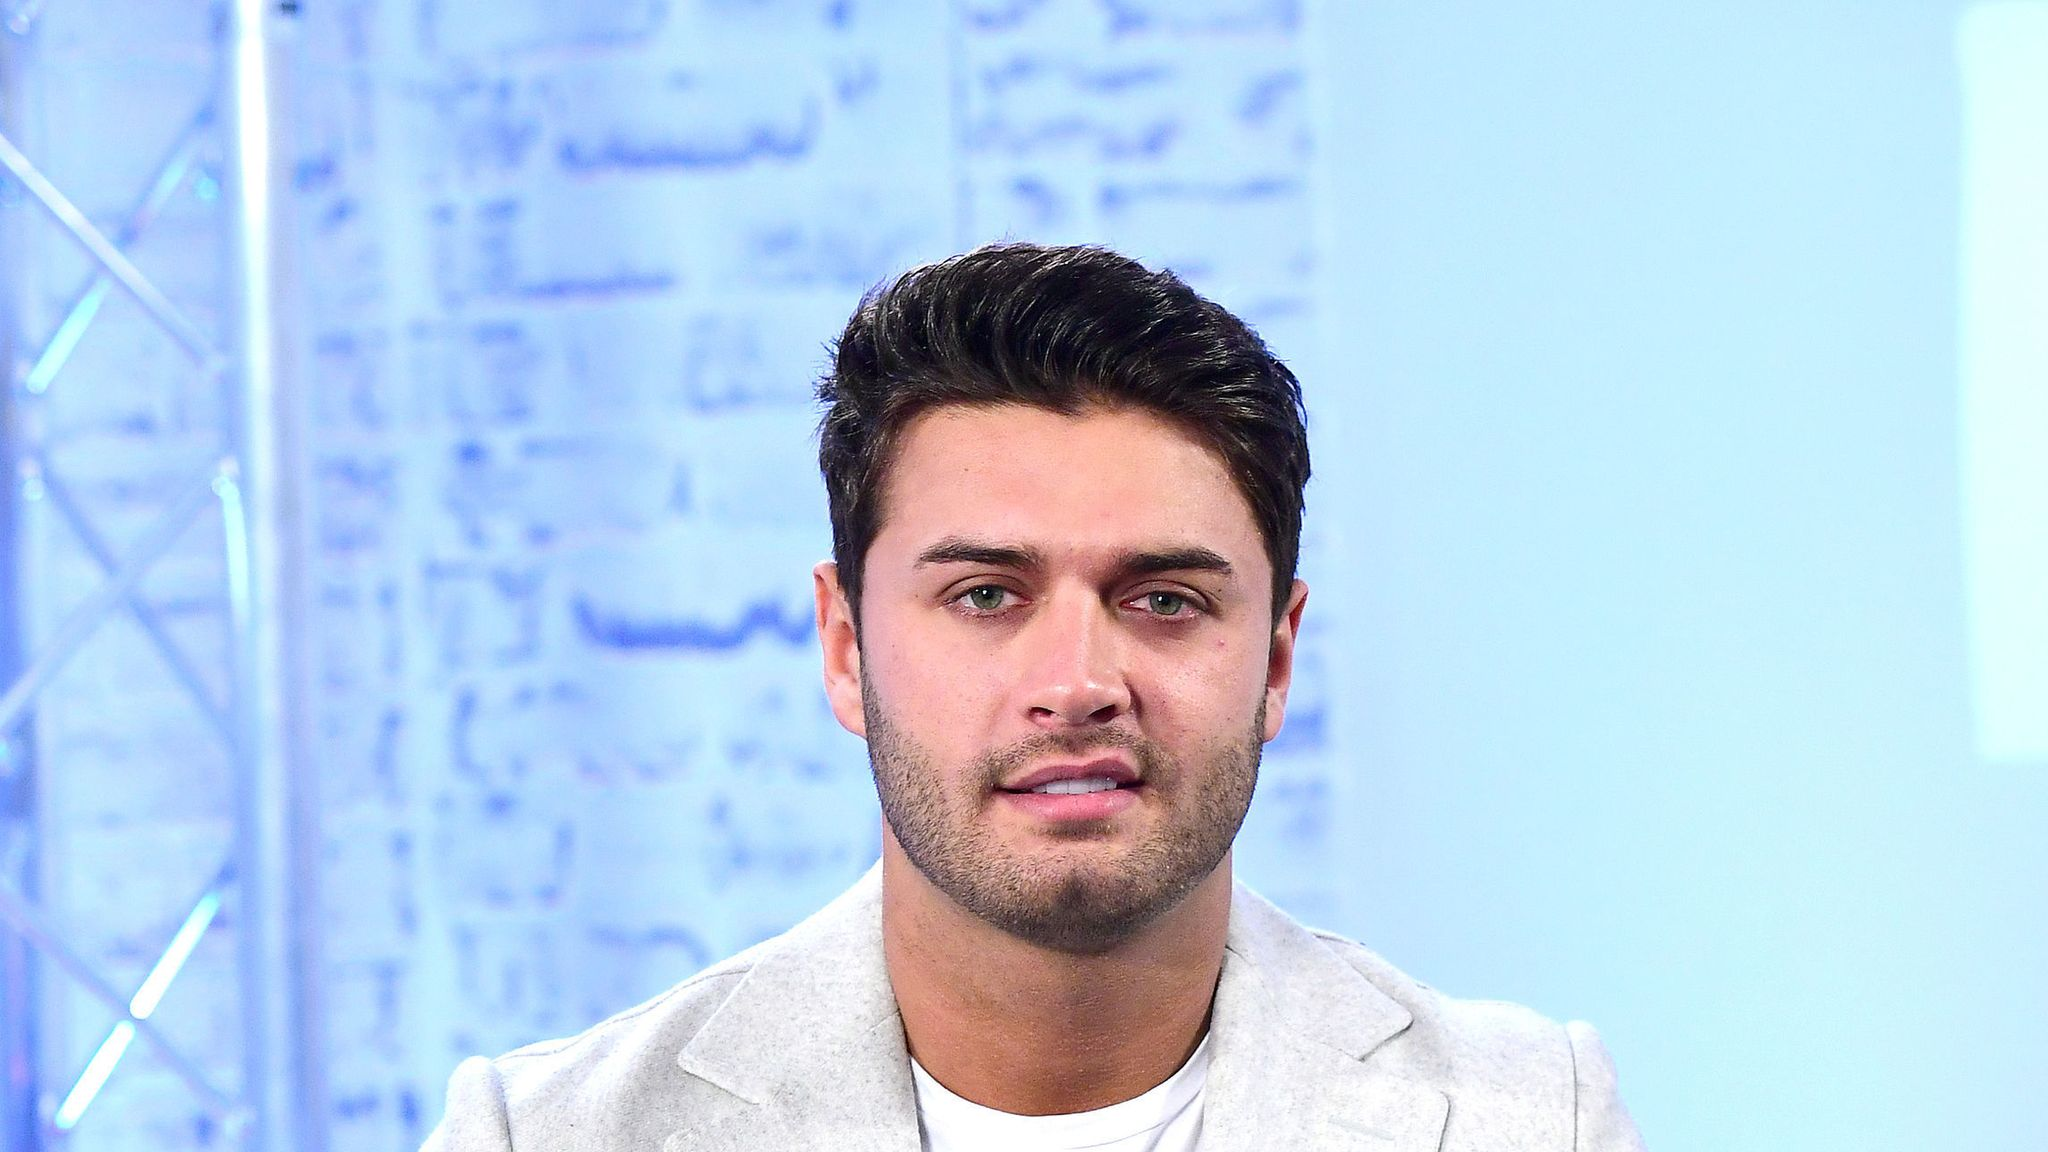 Love Island Star Mike Thalassitis Left Notes Before Killing Himself Uk News Sky News